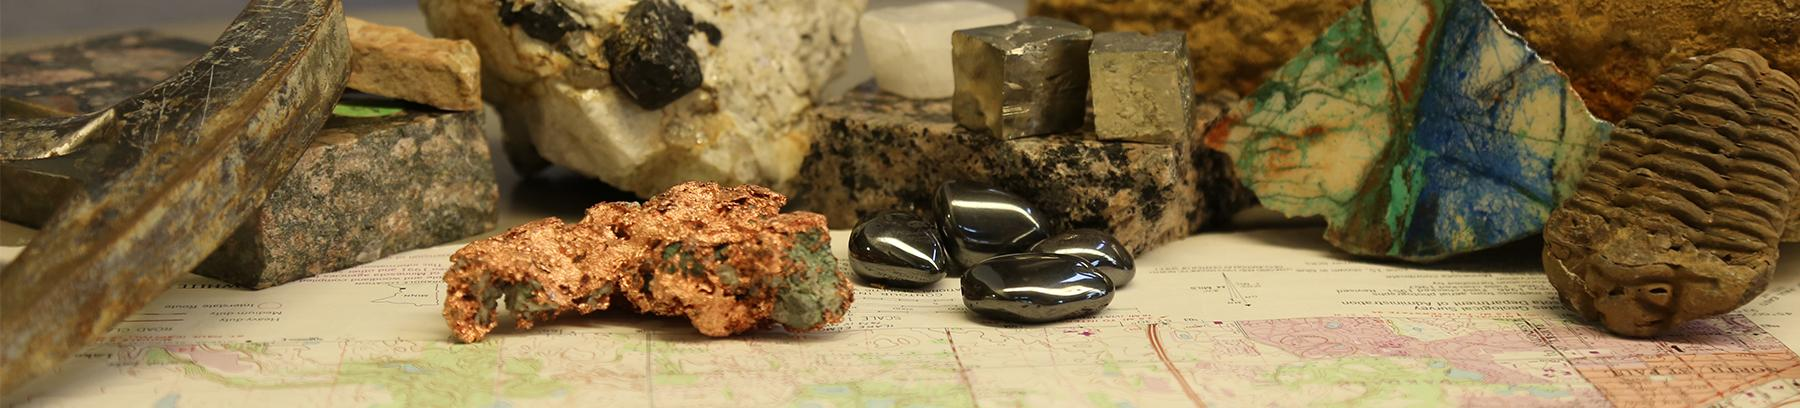 Earth science rocks and minerals.